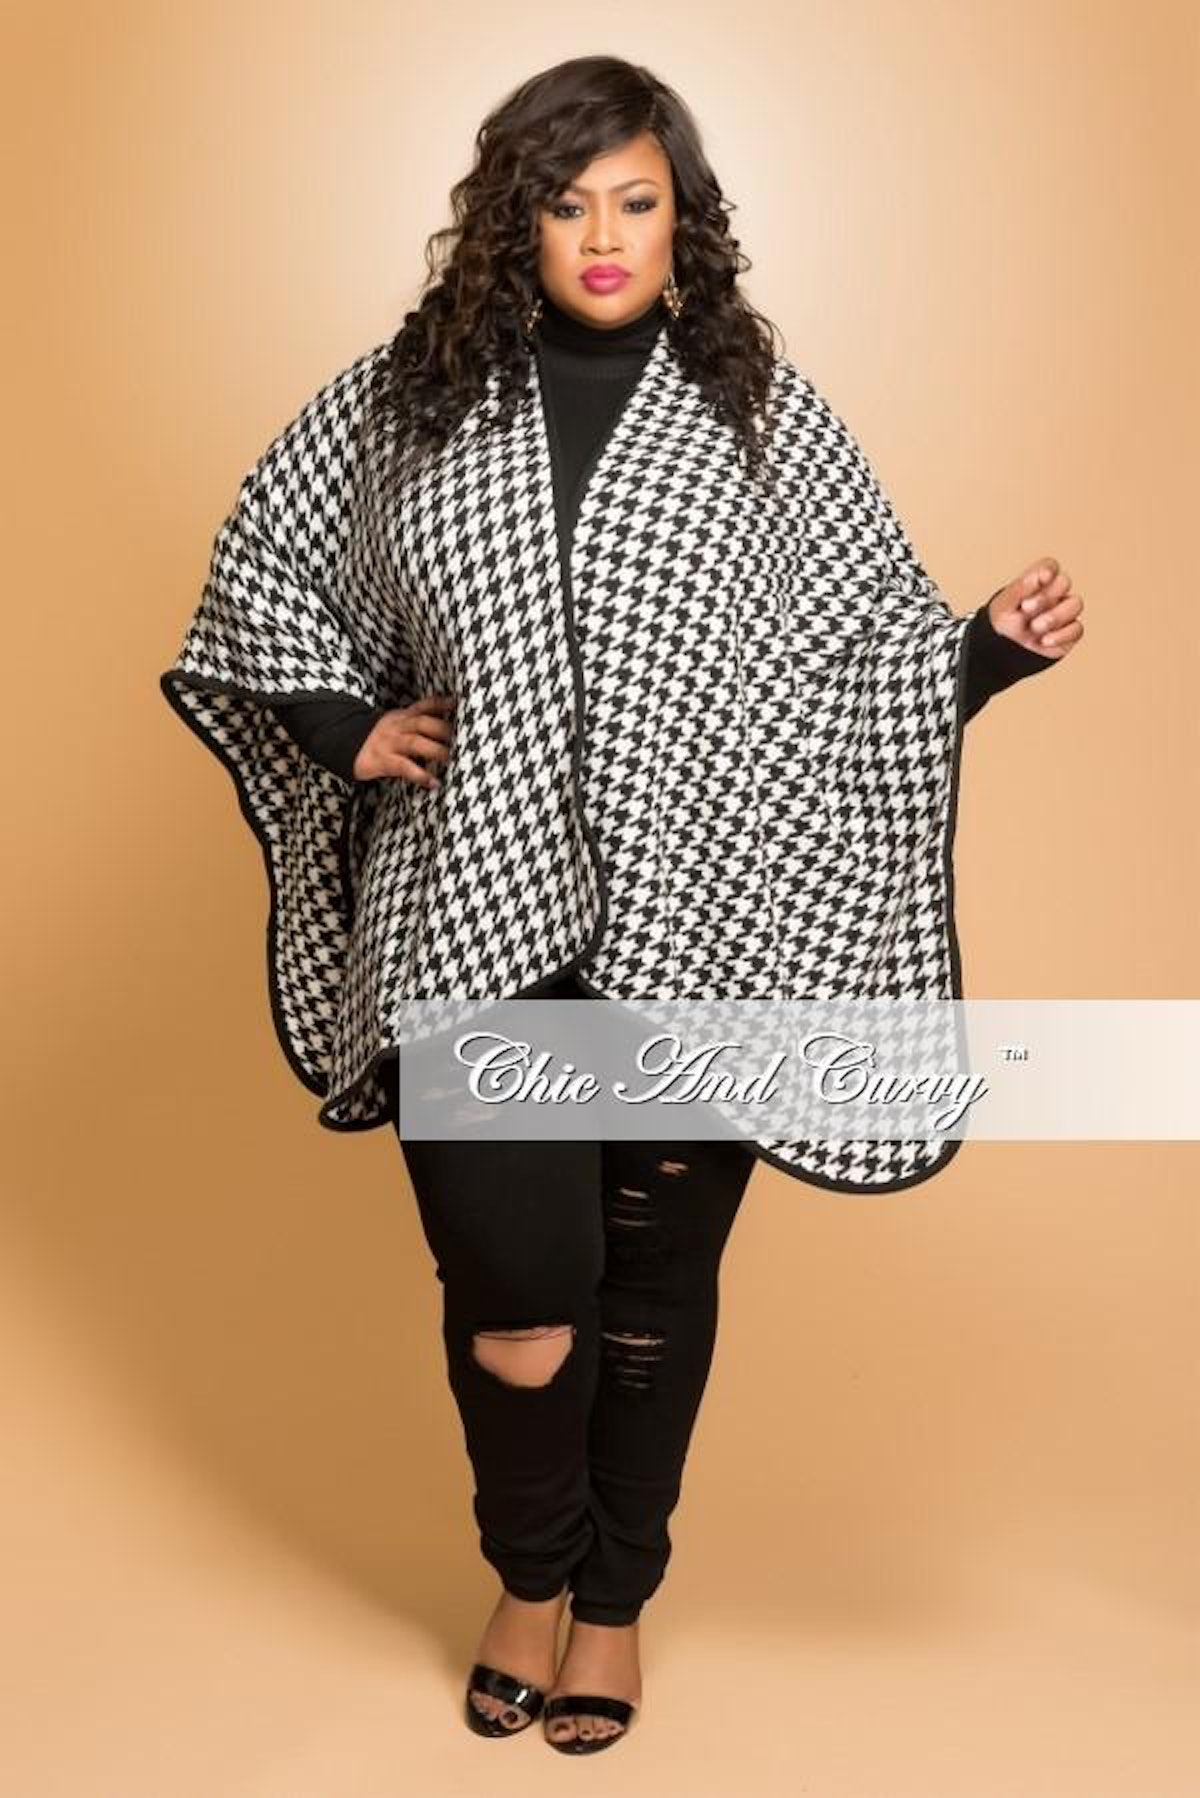 Chic and Curvy Plus Size Coat with Faux Fur Collar in Black Line Print